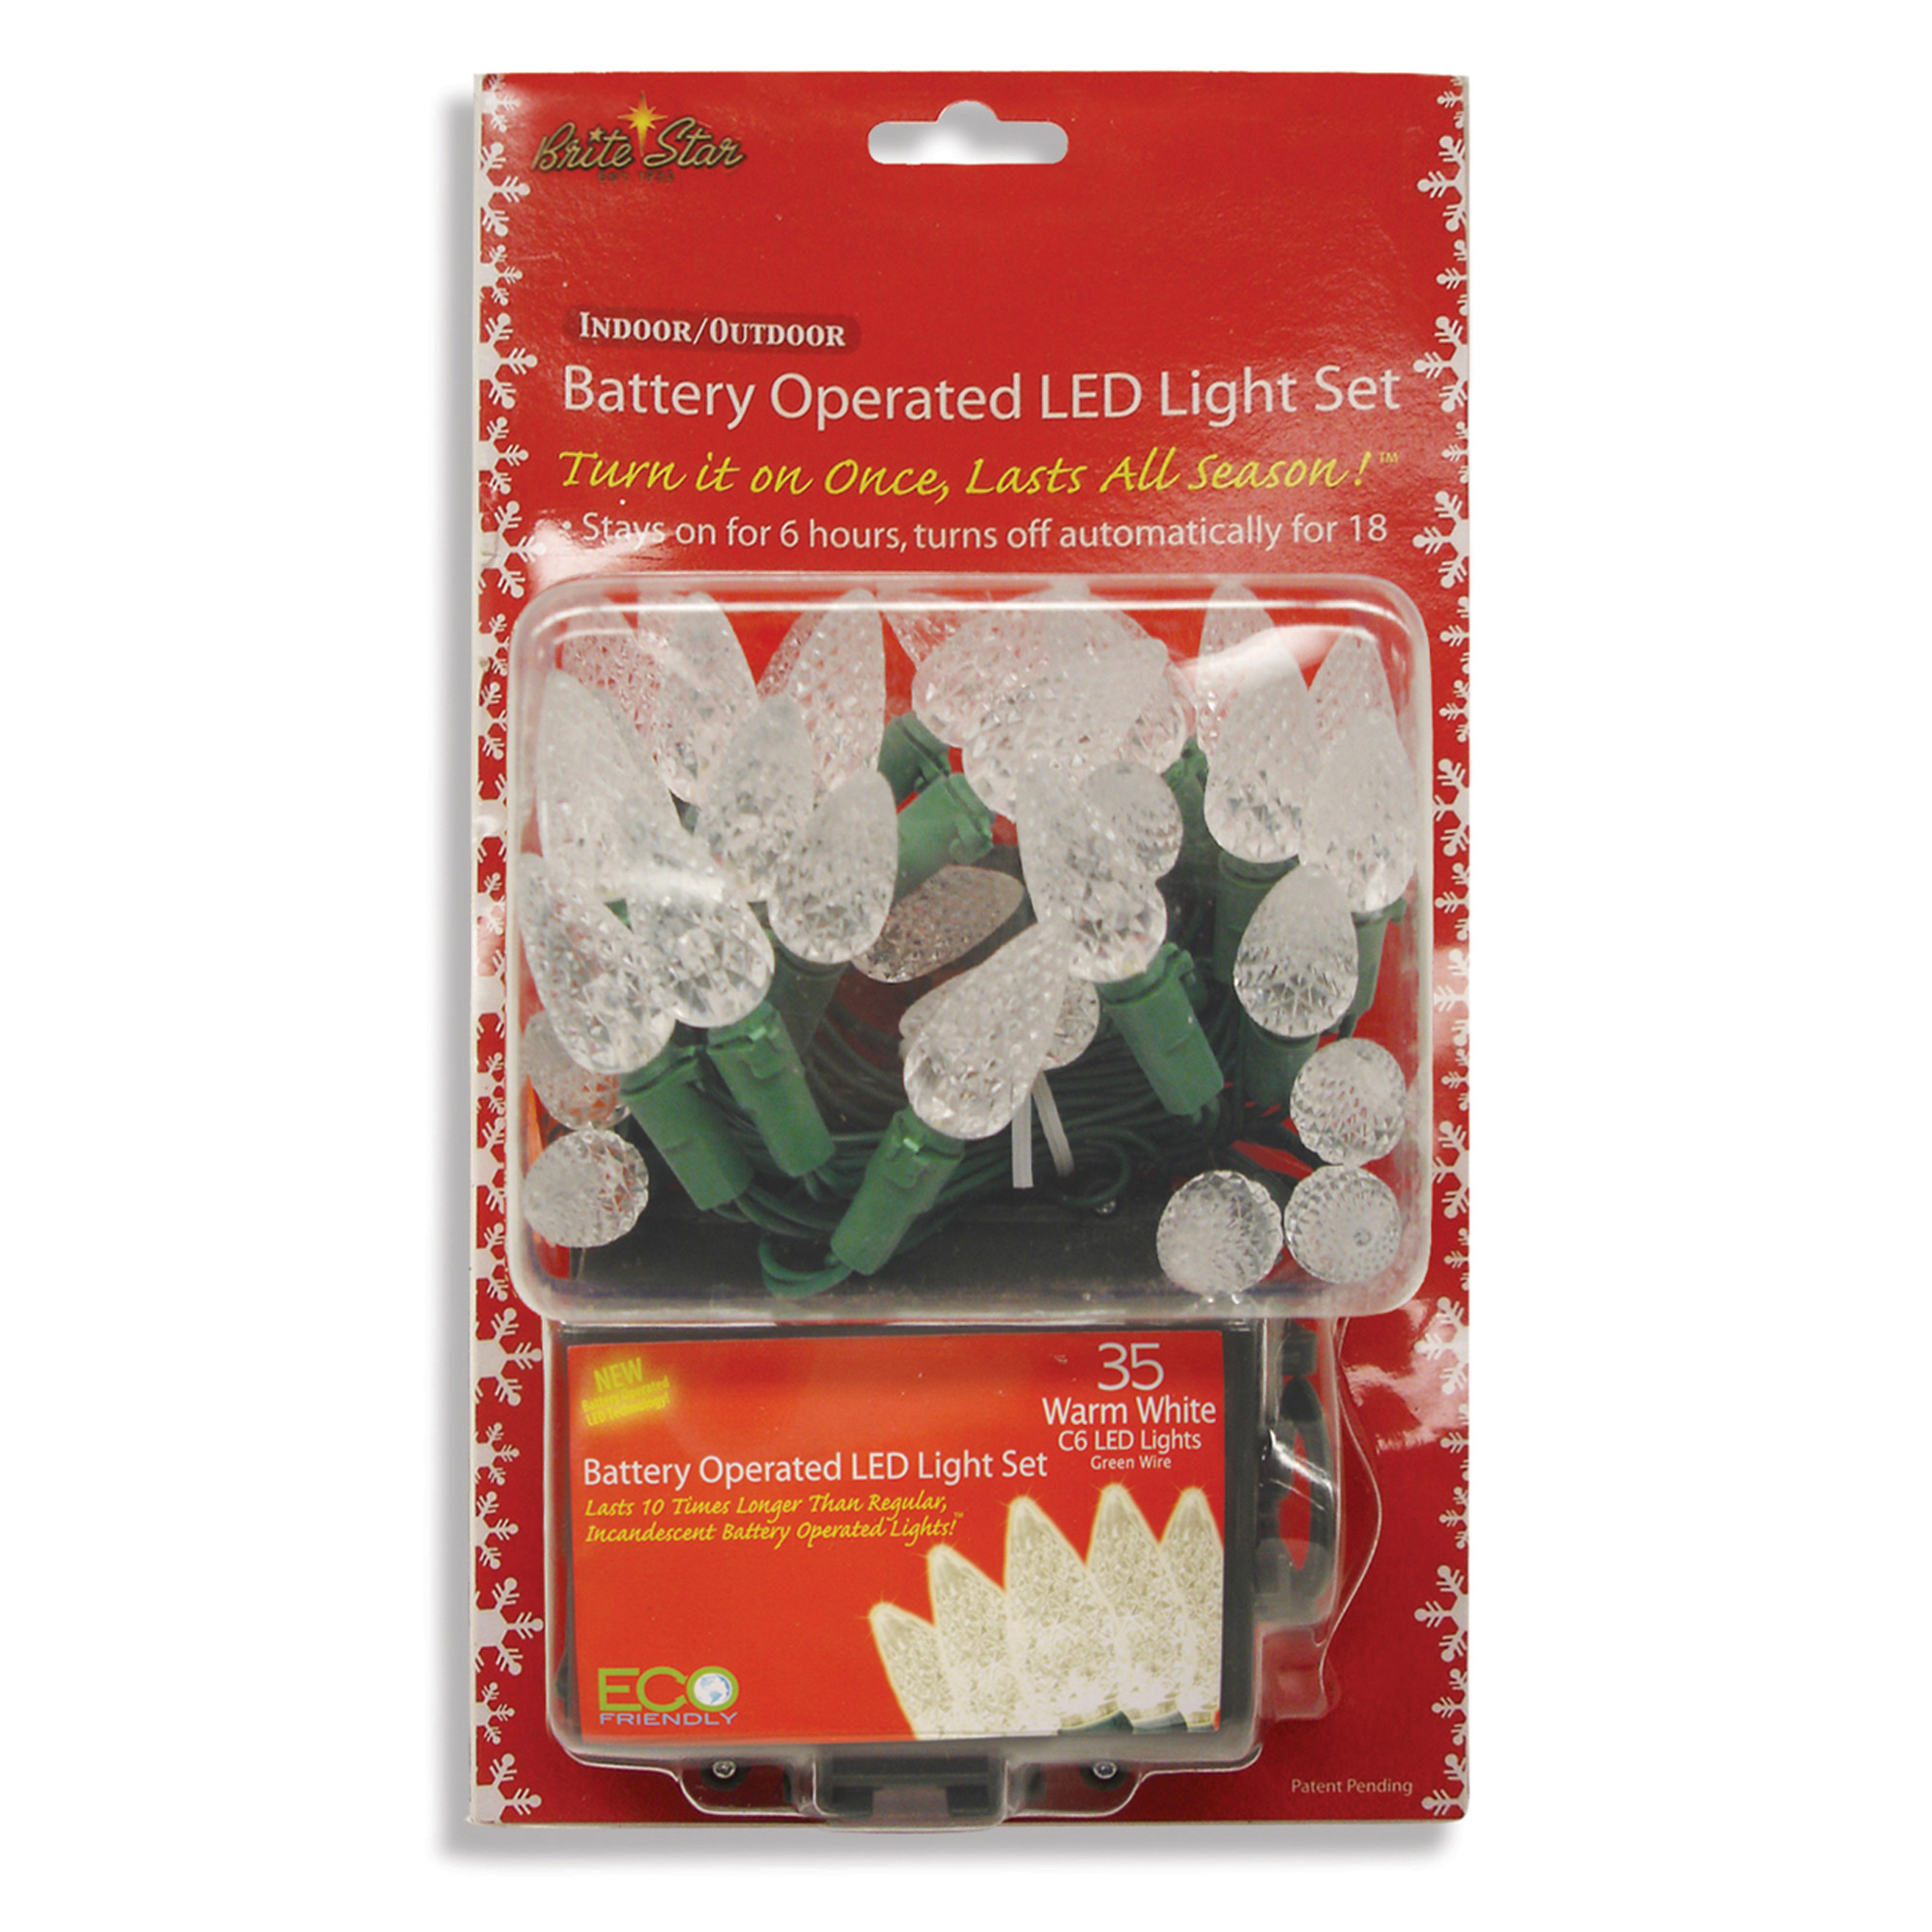 Brite Star 41-622-23 C6 Battery Operated LED Lights Set, 35 Warm, White